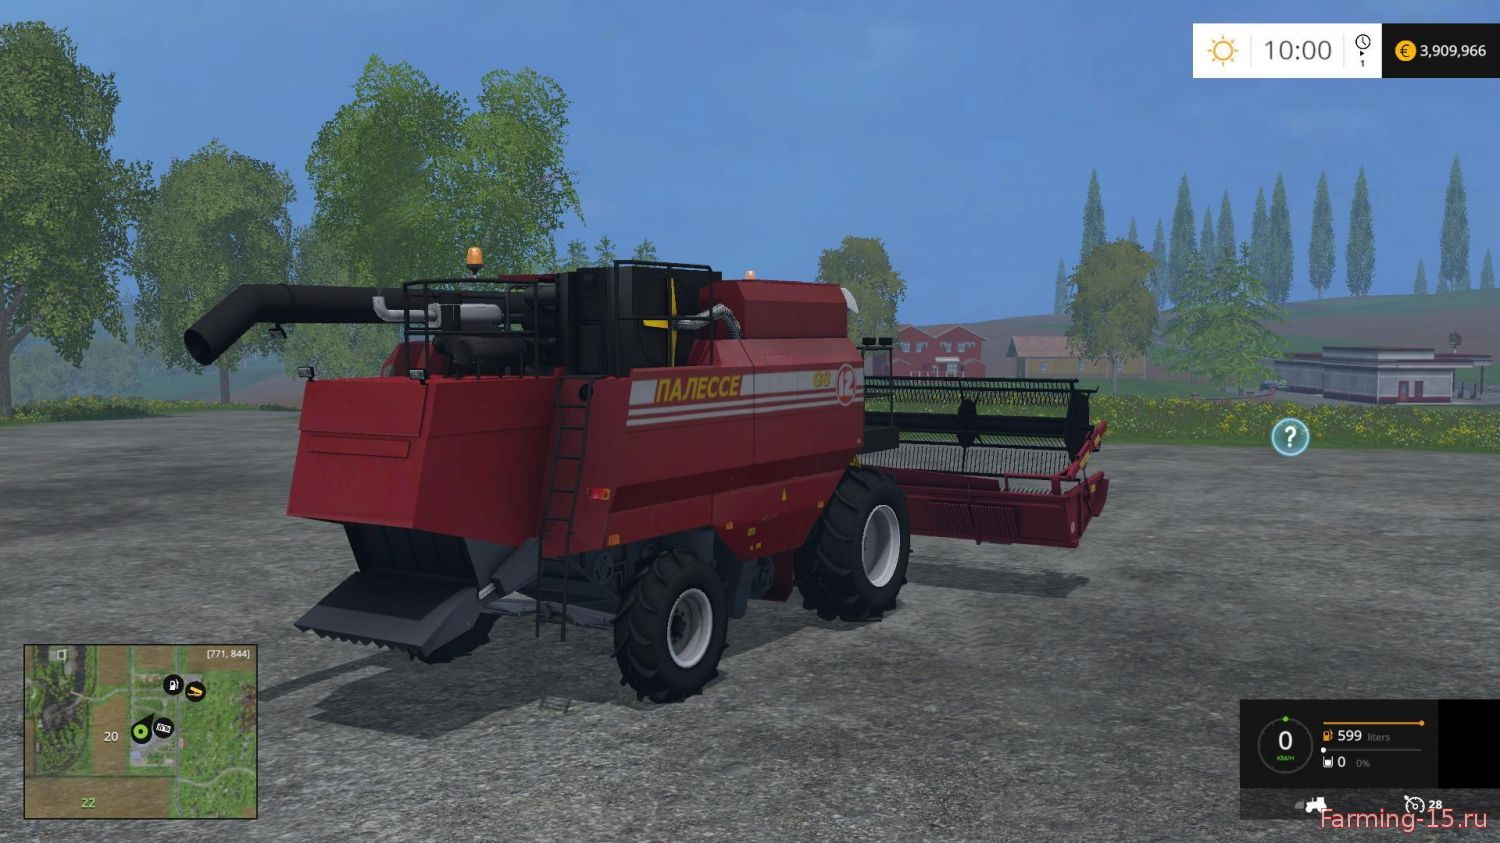 Мод комбайн Палессе GS12 v 1.1 для Farming Simulator 2015